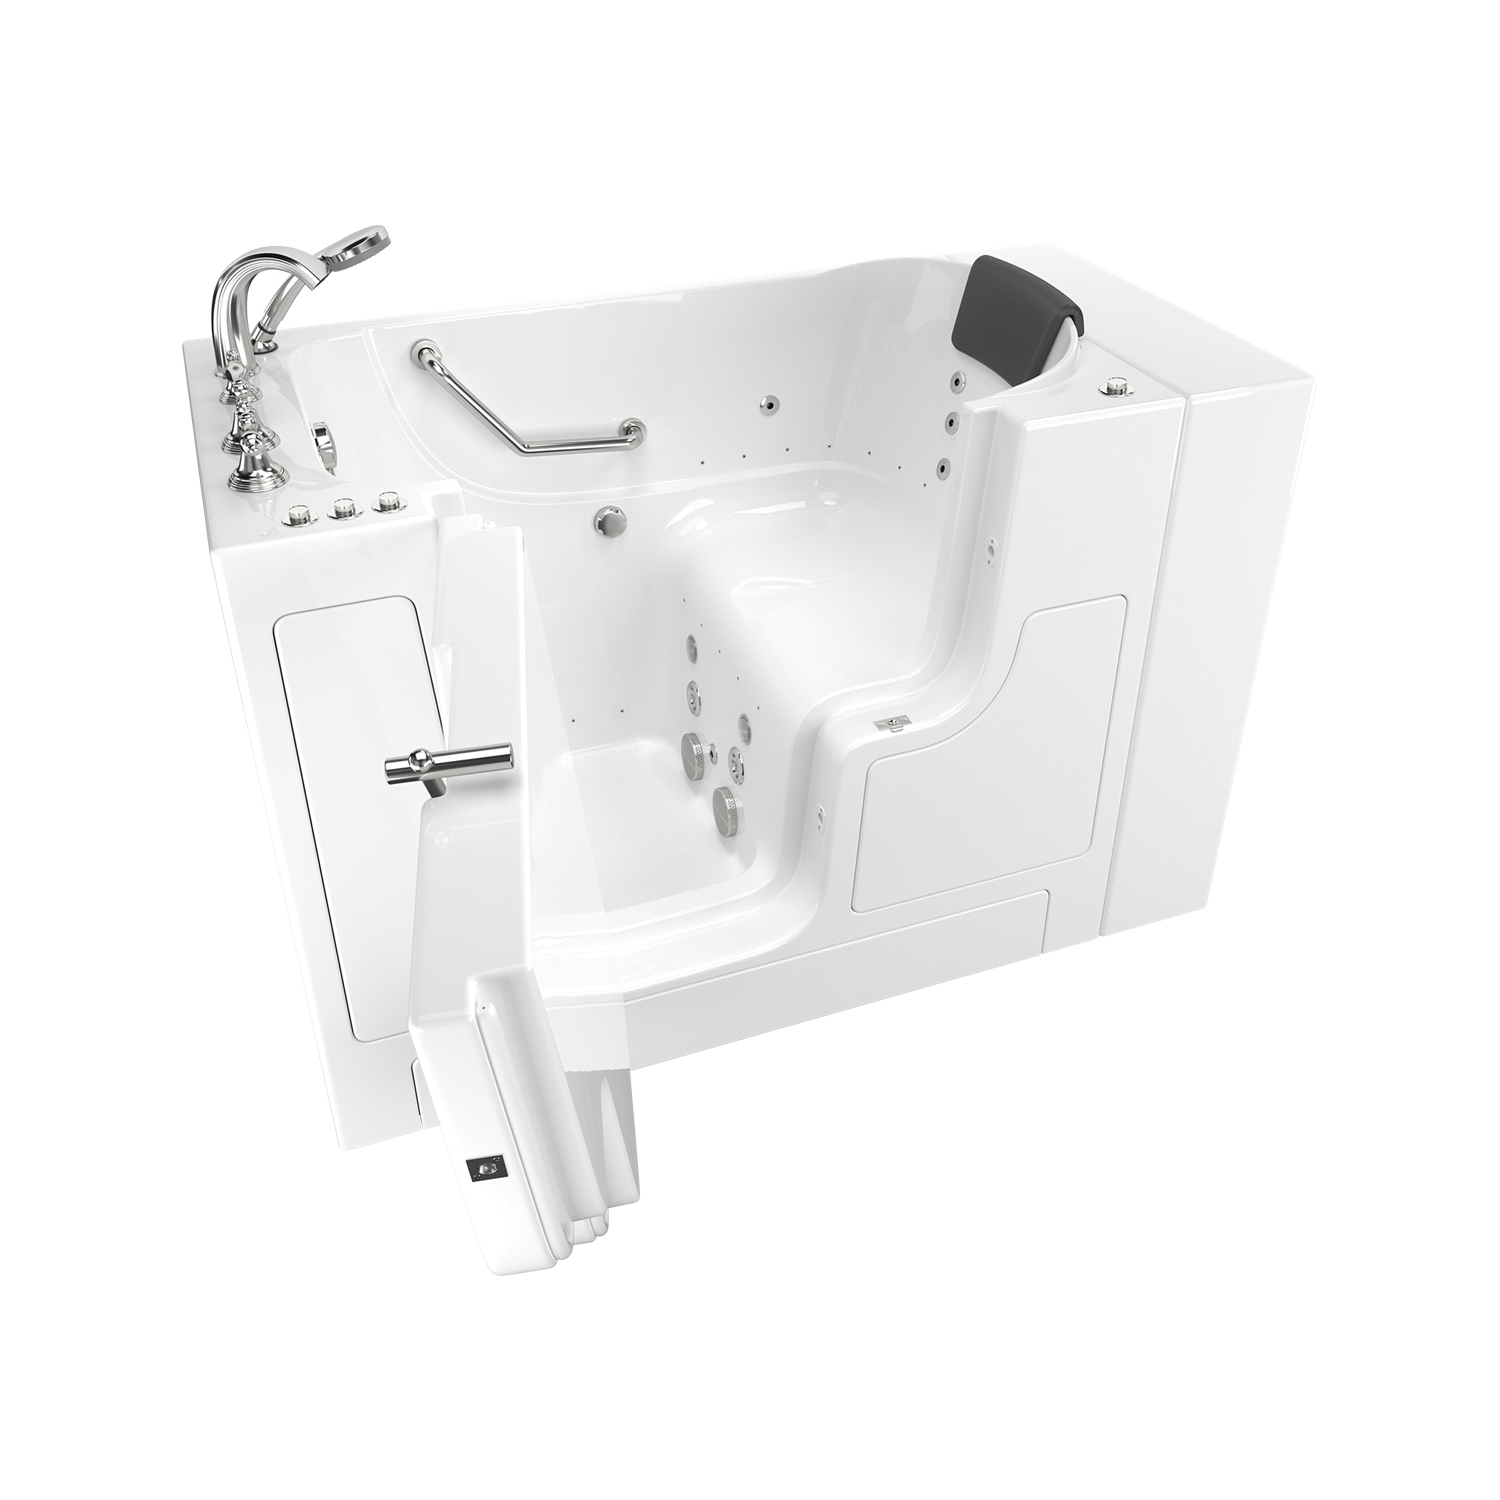 American Standard 3052OD.109.CLW-PC Premium Bathtub Without Jet, Air Spa/Whirlpool, 52 in L x 30 in W, Left Drain, White